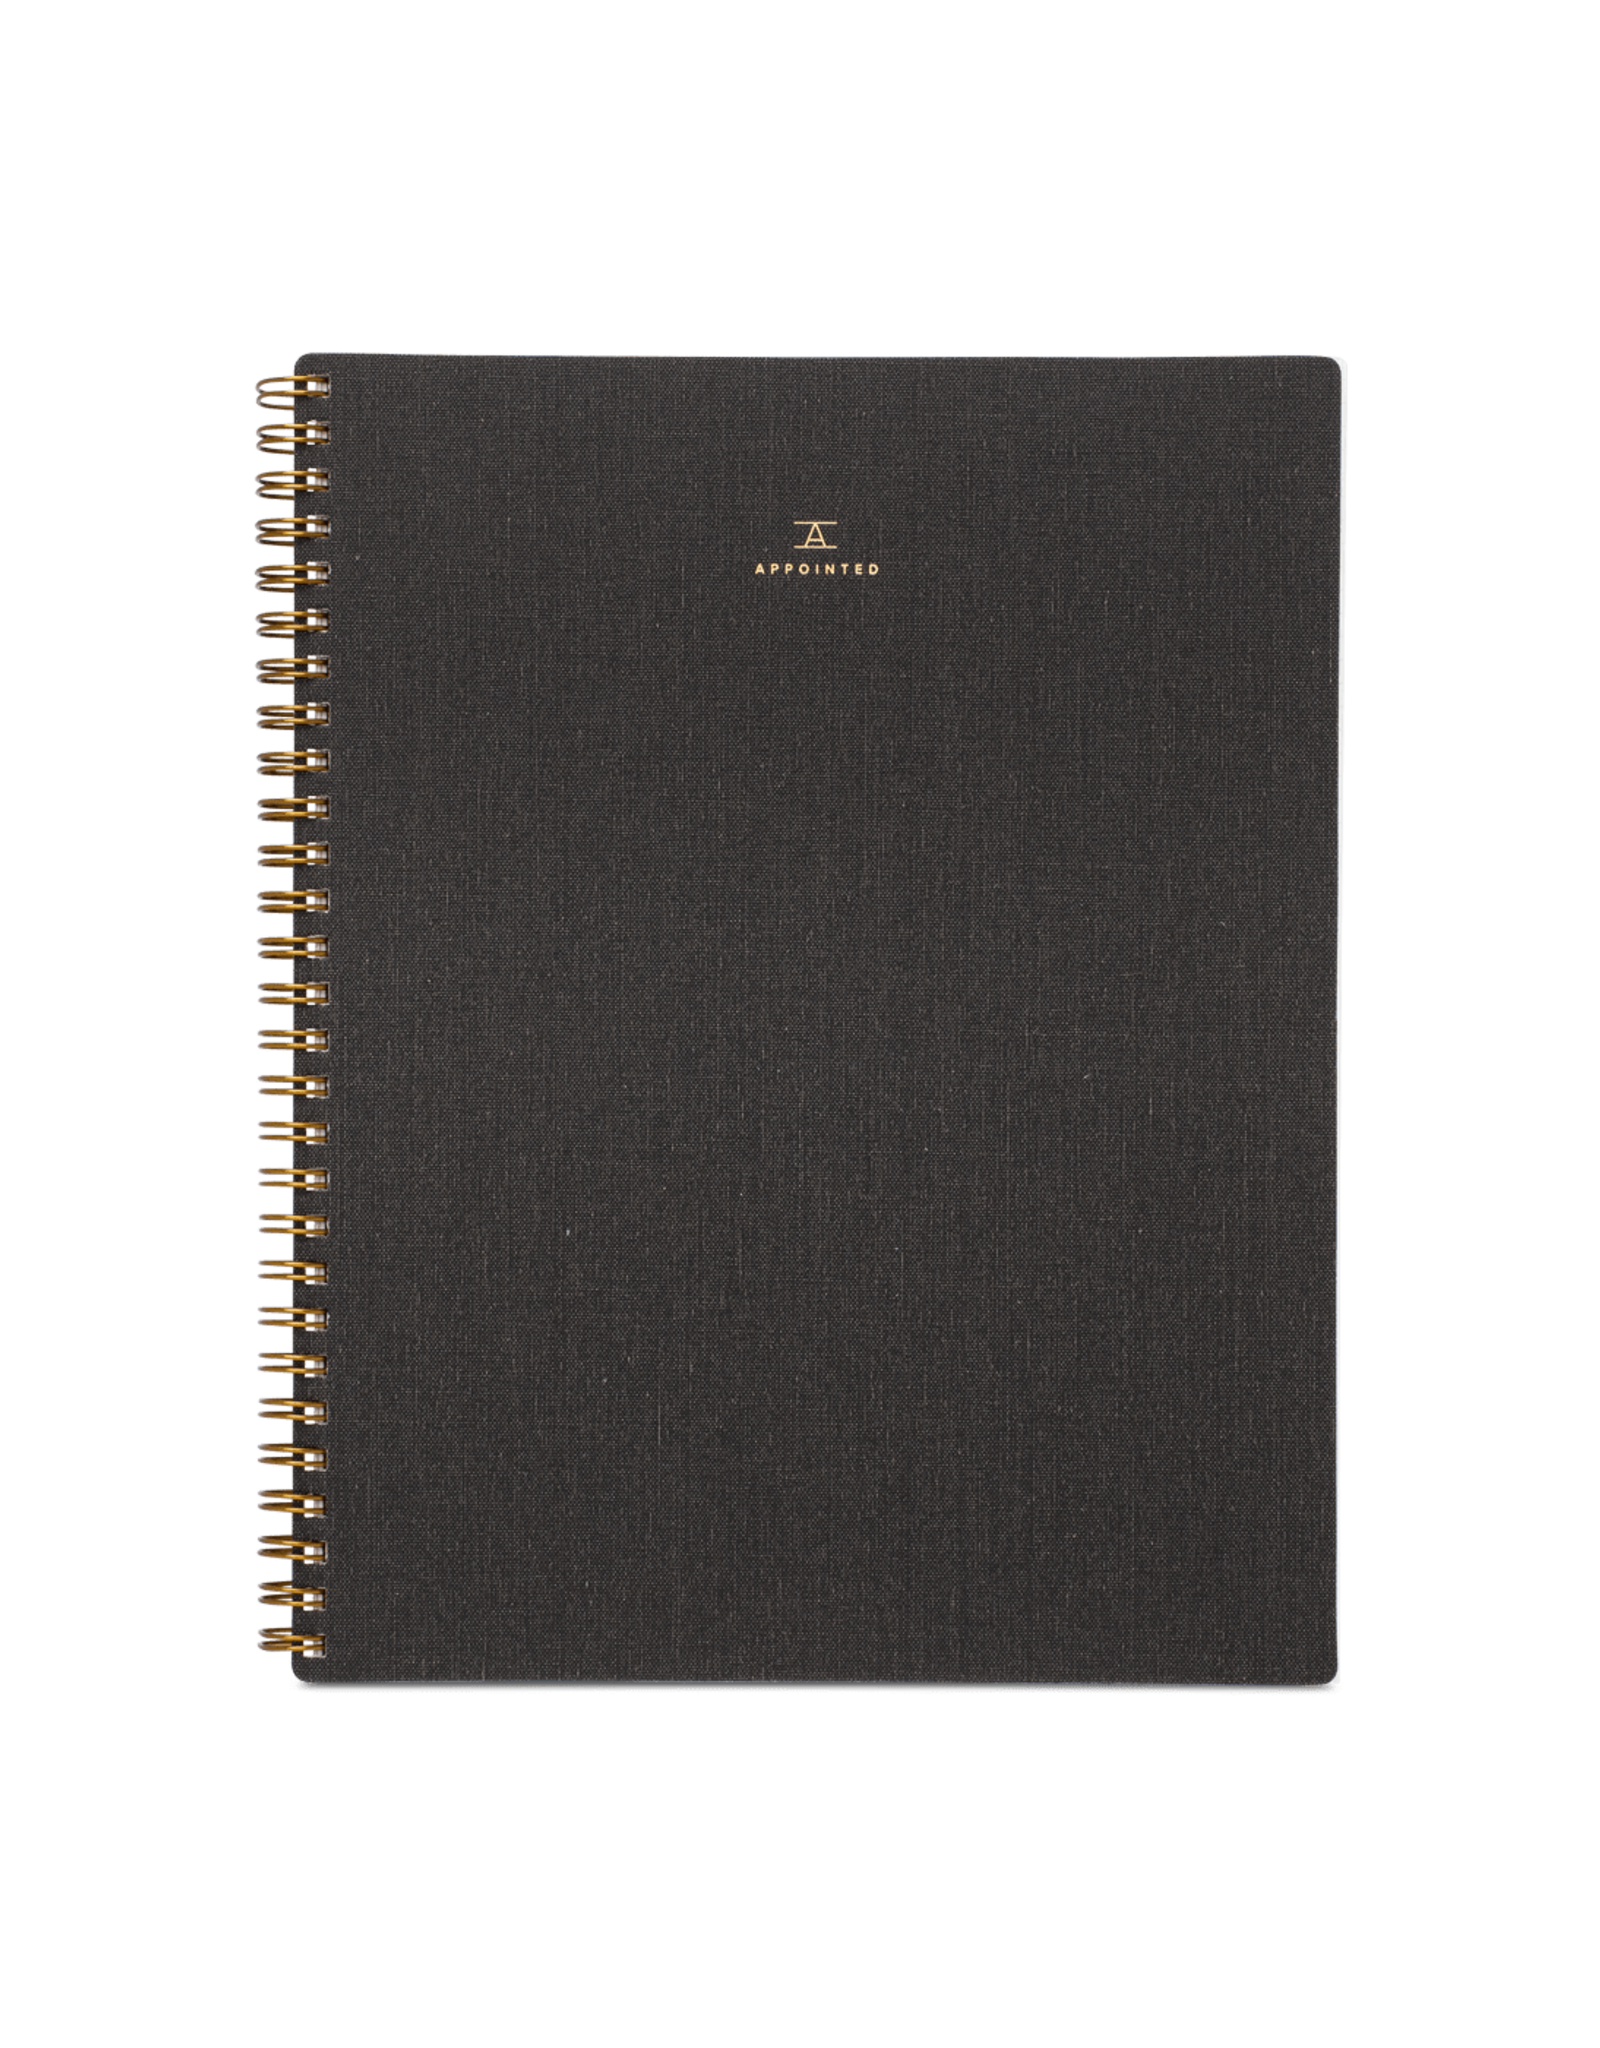 Notebook - Charcoal Gray - Lined